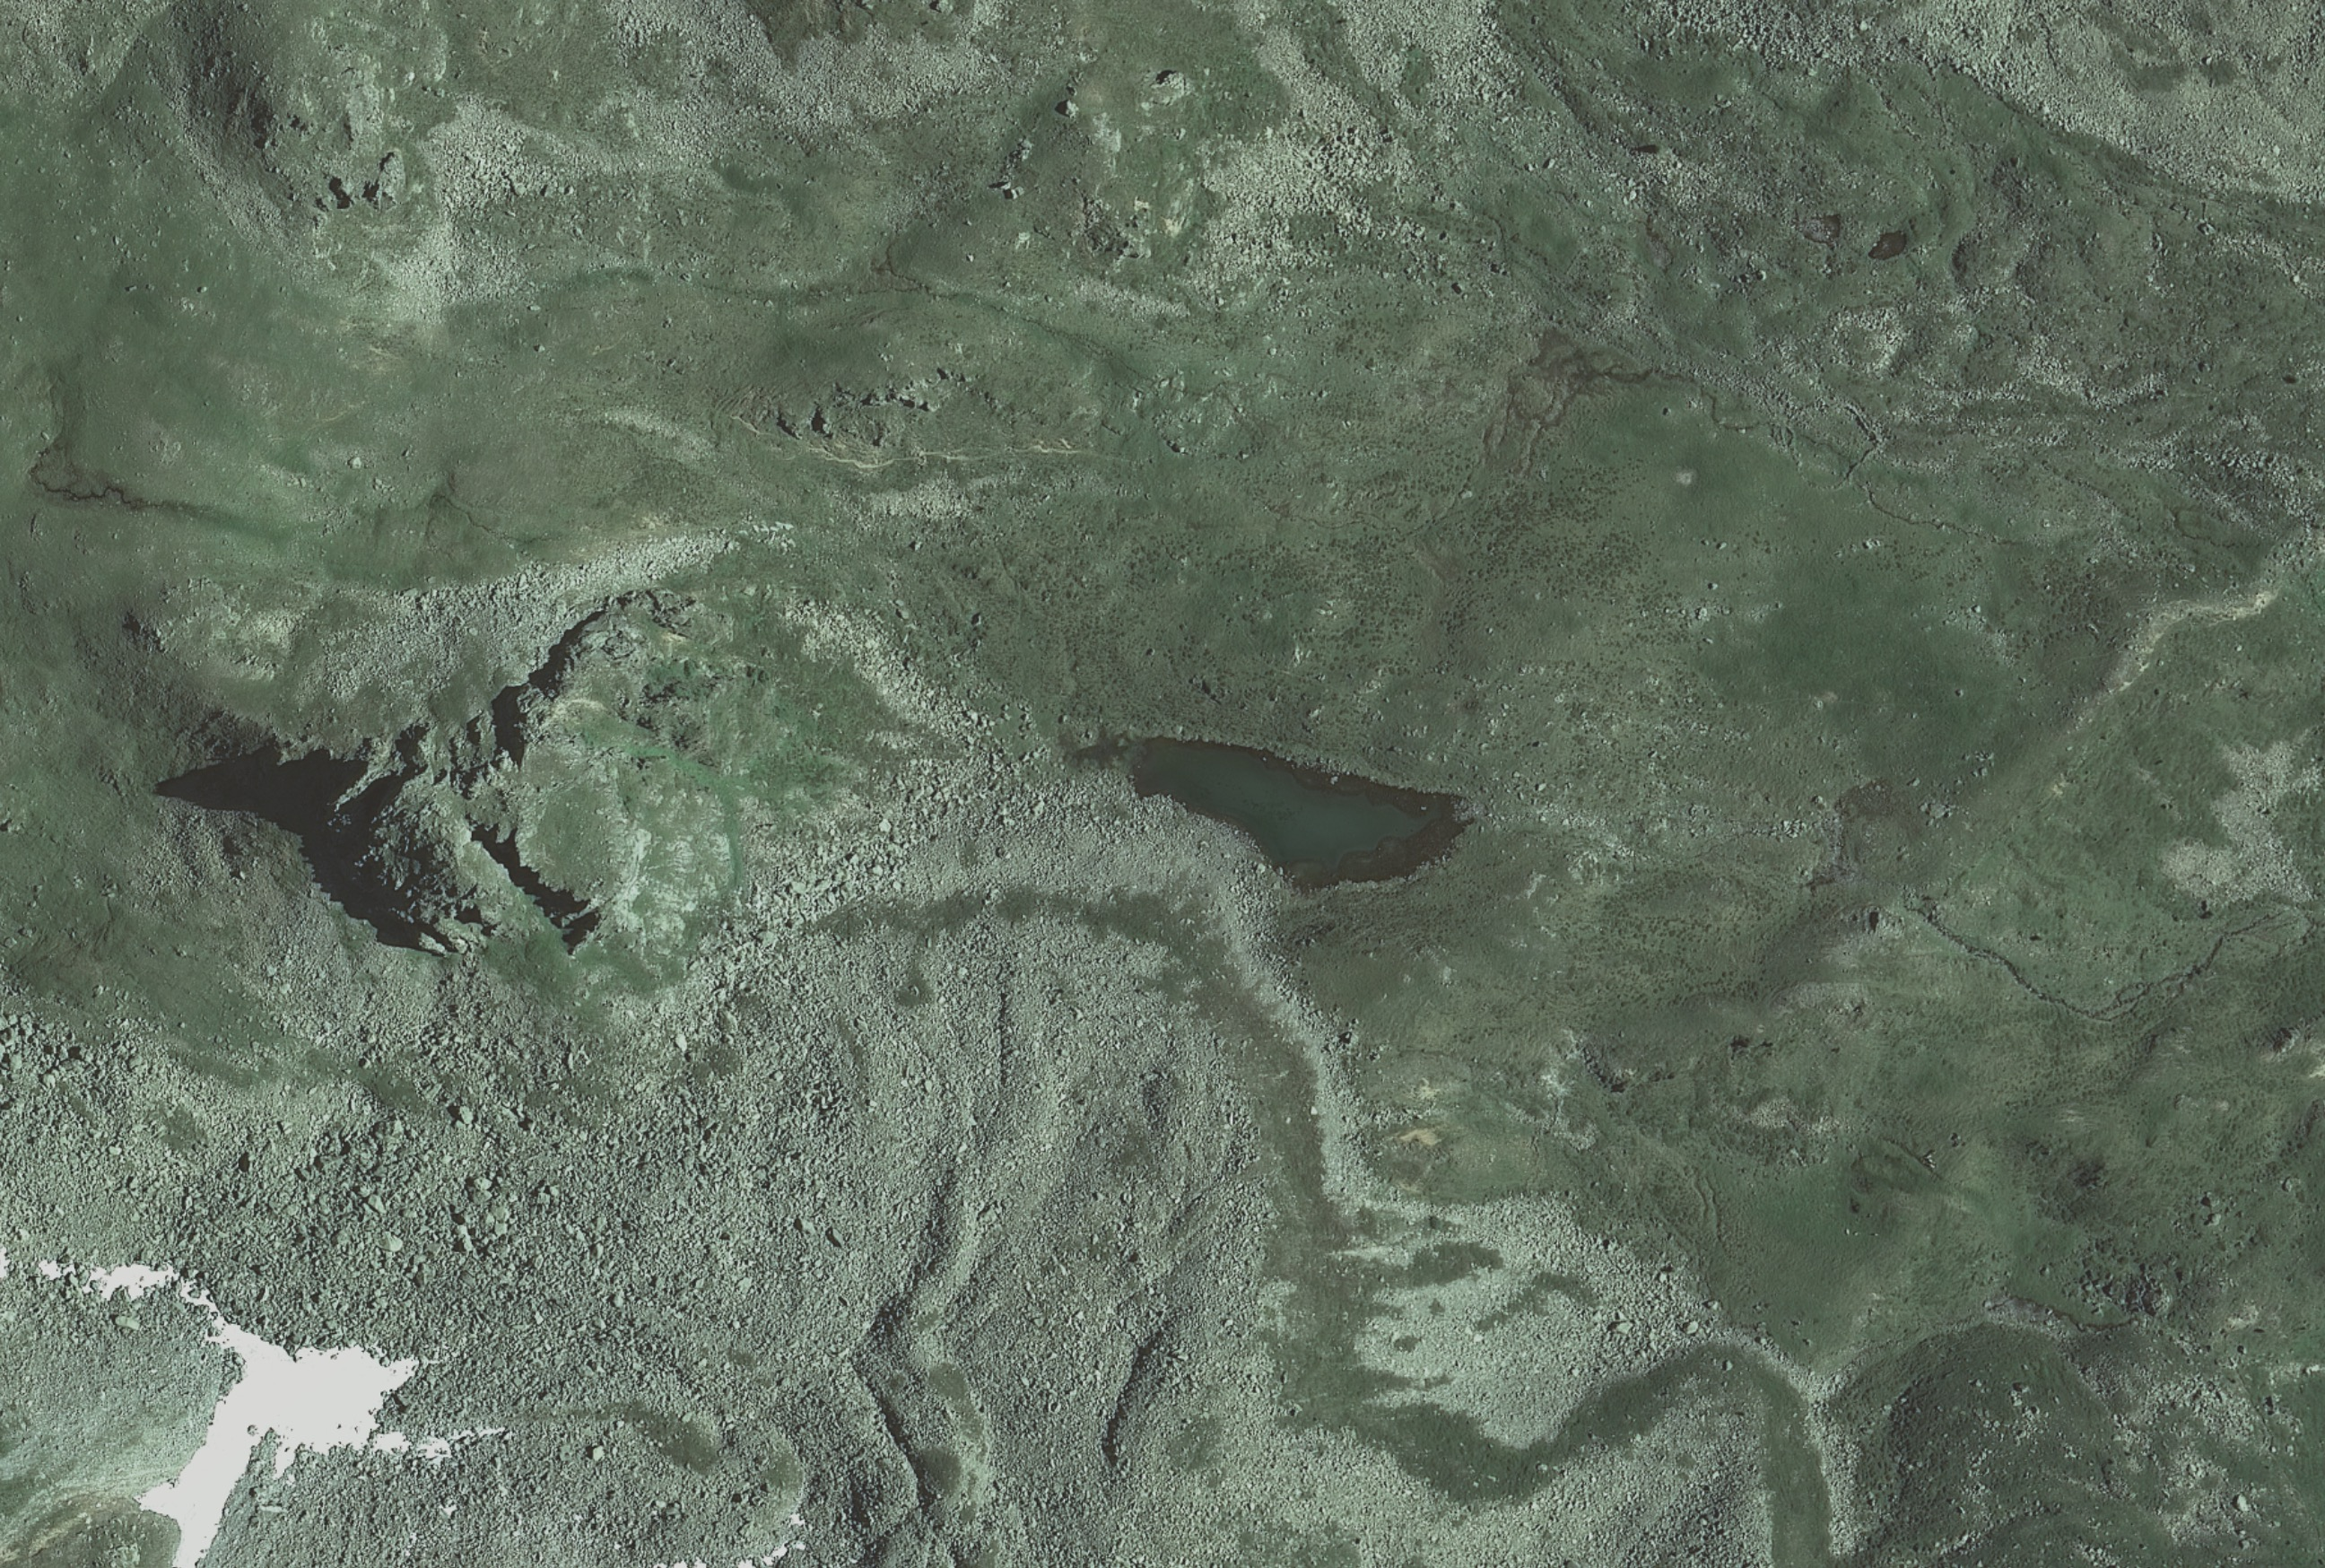 Lago  Poinella dal satellite